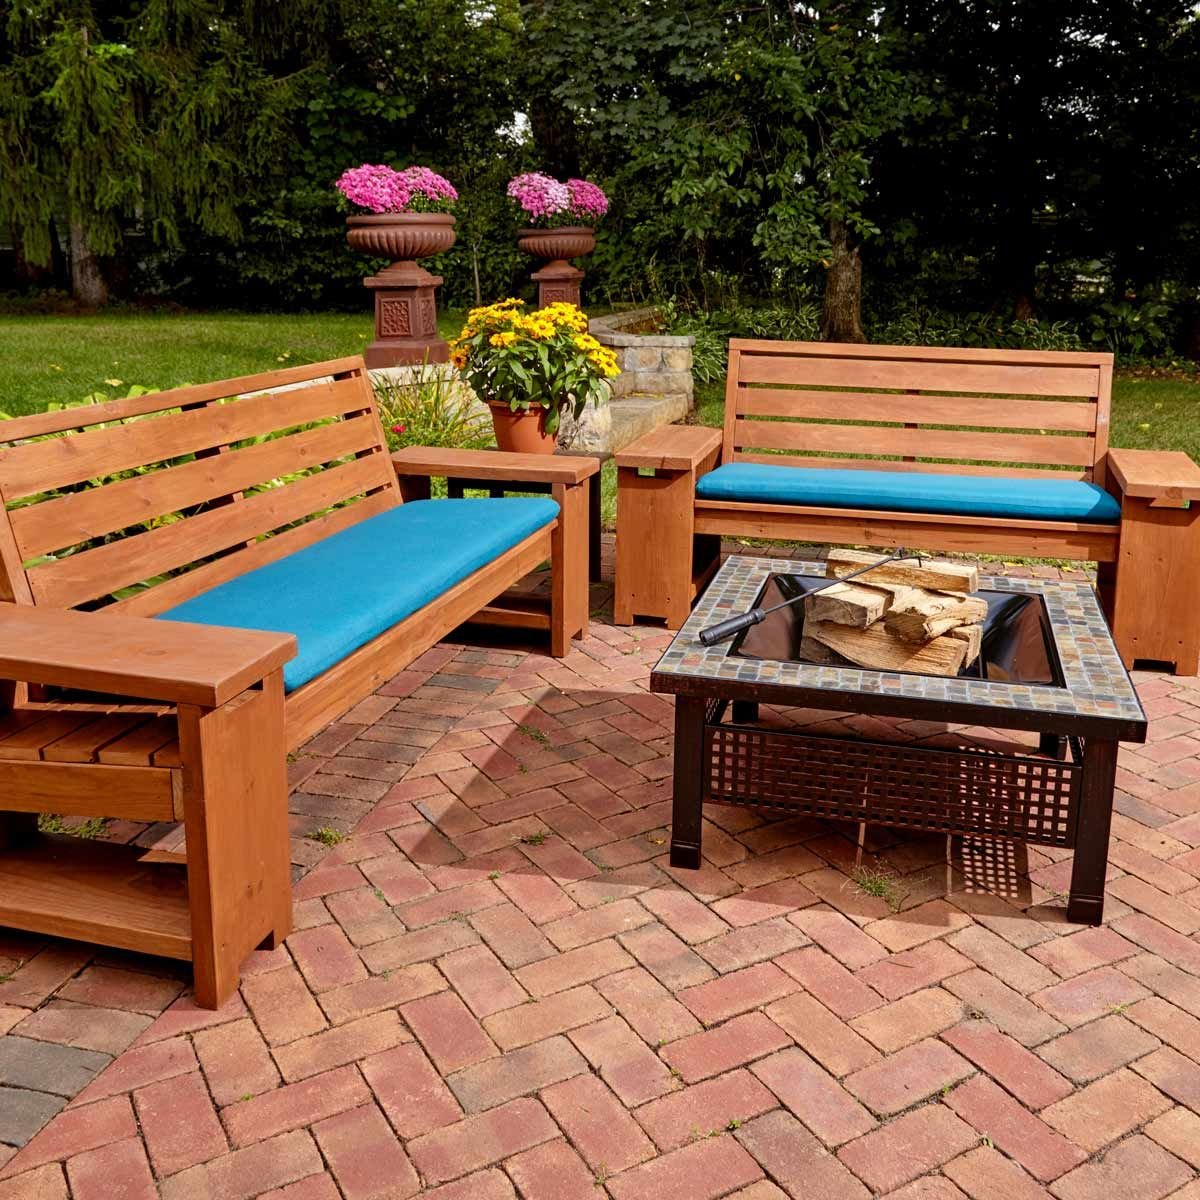 40 Outdoor Woodworking Projects For Beginners: 10 Easy Wooden Lawn Chairs & Benches To Build